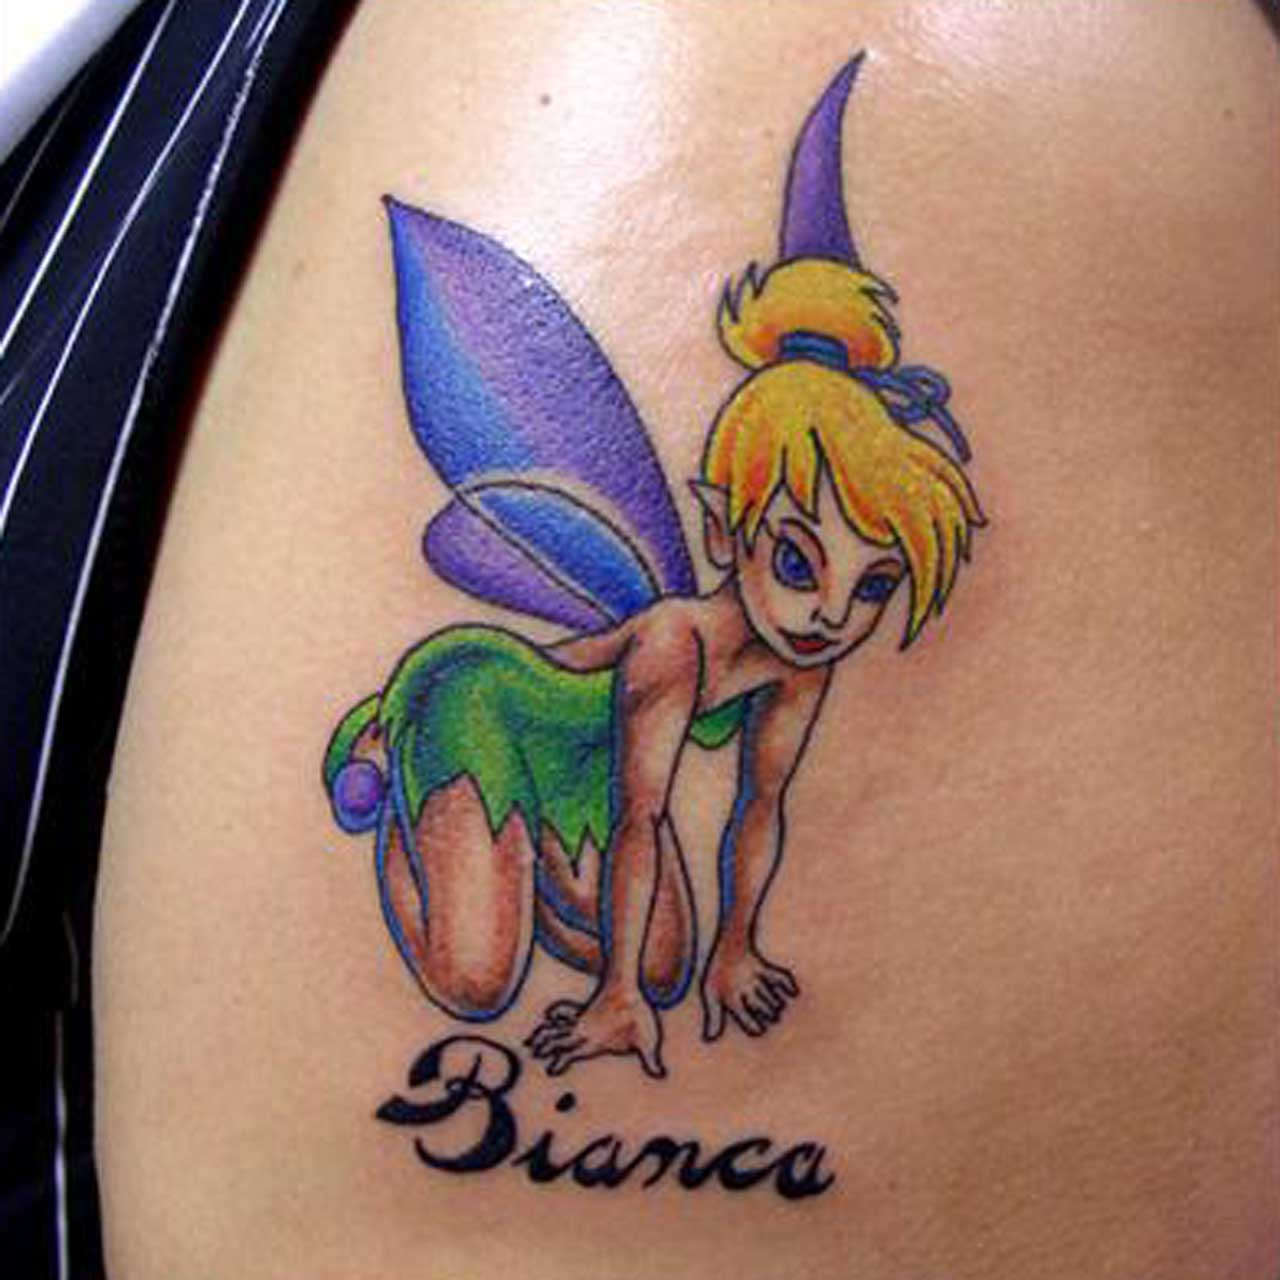 fairy tattoo designs for women,sexy fairy tattoos for women,latest fairy tattoo designs,cute fairy tattoos images